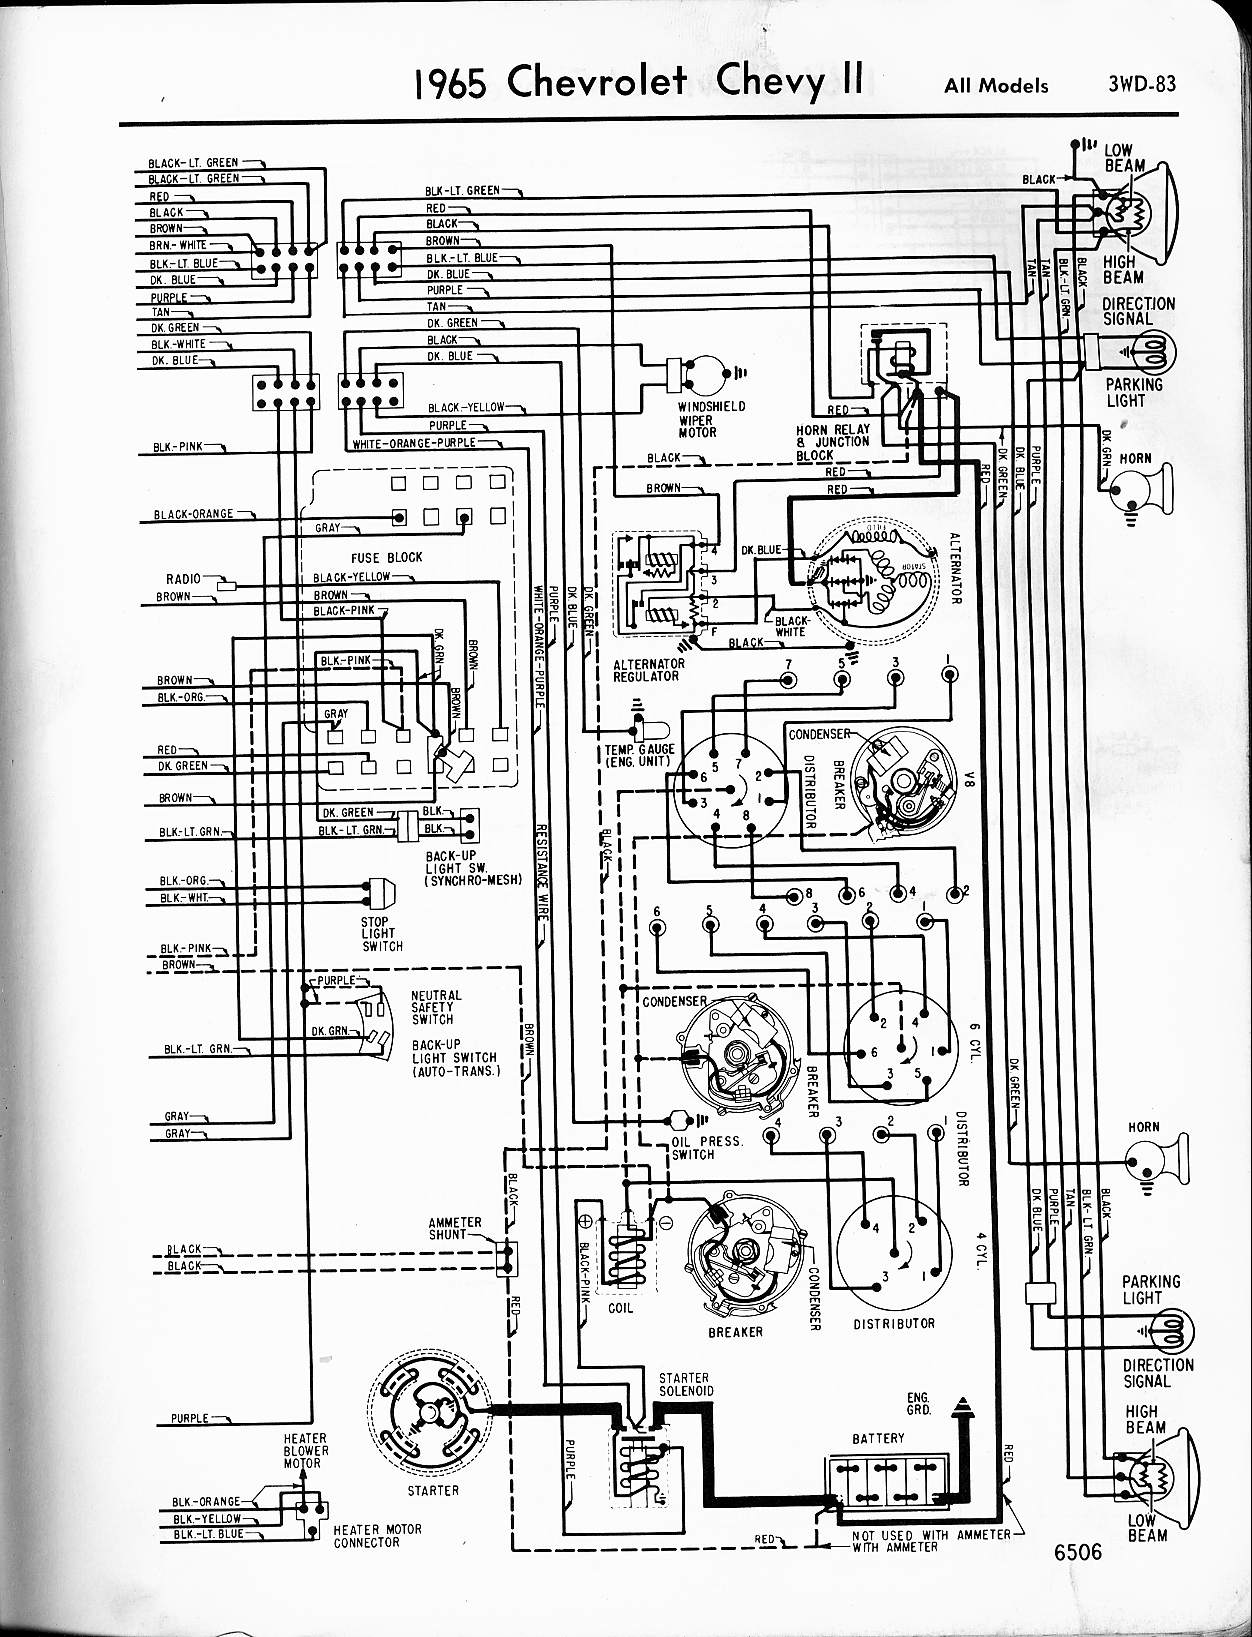 MWireChev65_3WD 083 1967 chevy ii wiring diagram 1967 wirning diagrams Chevy Truck Wiring Harness at soozxer.org